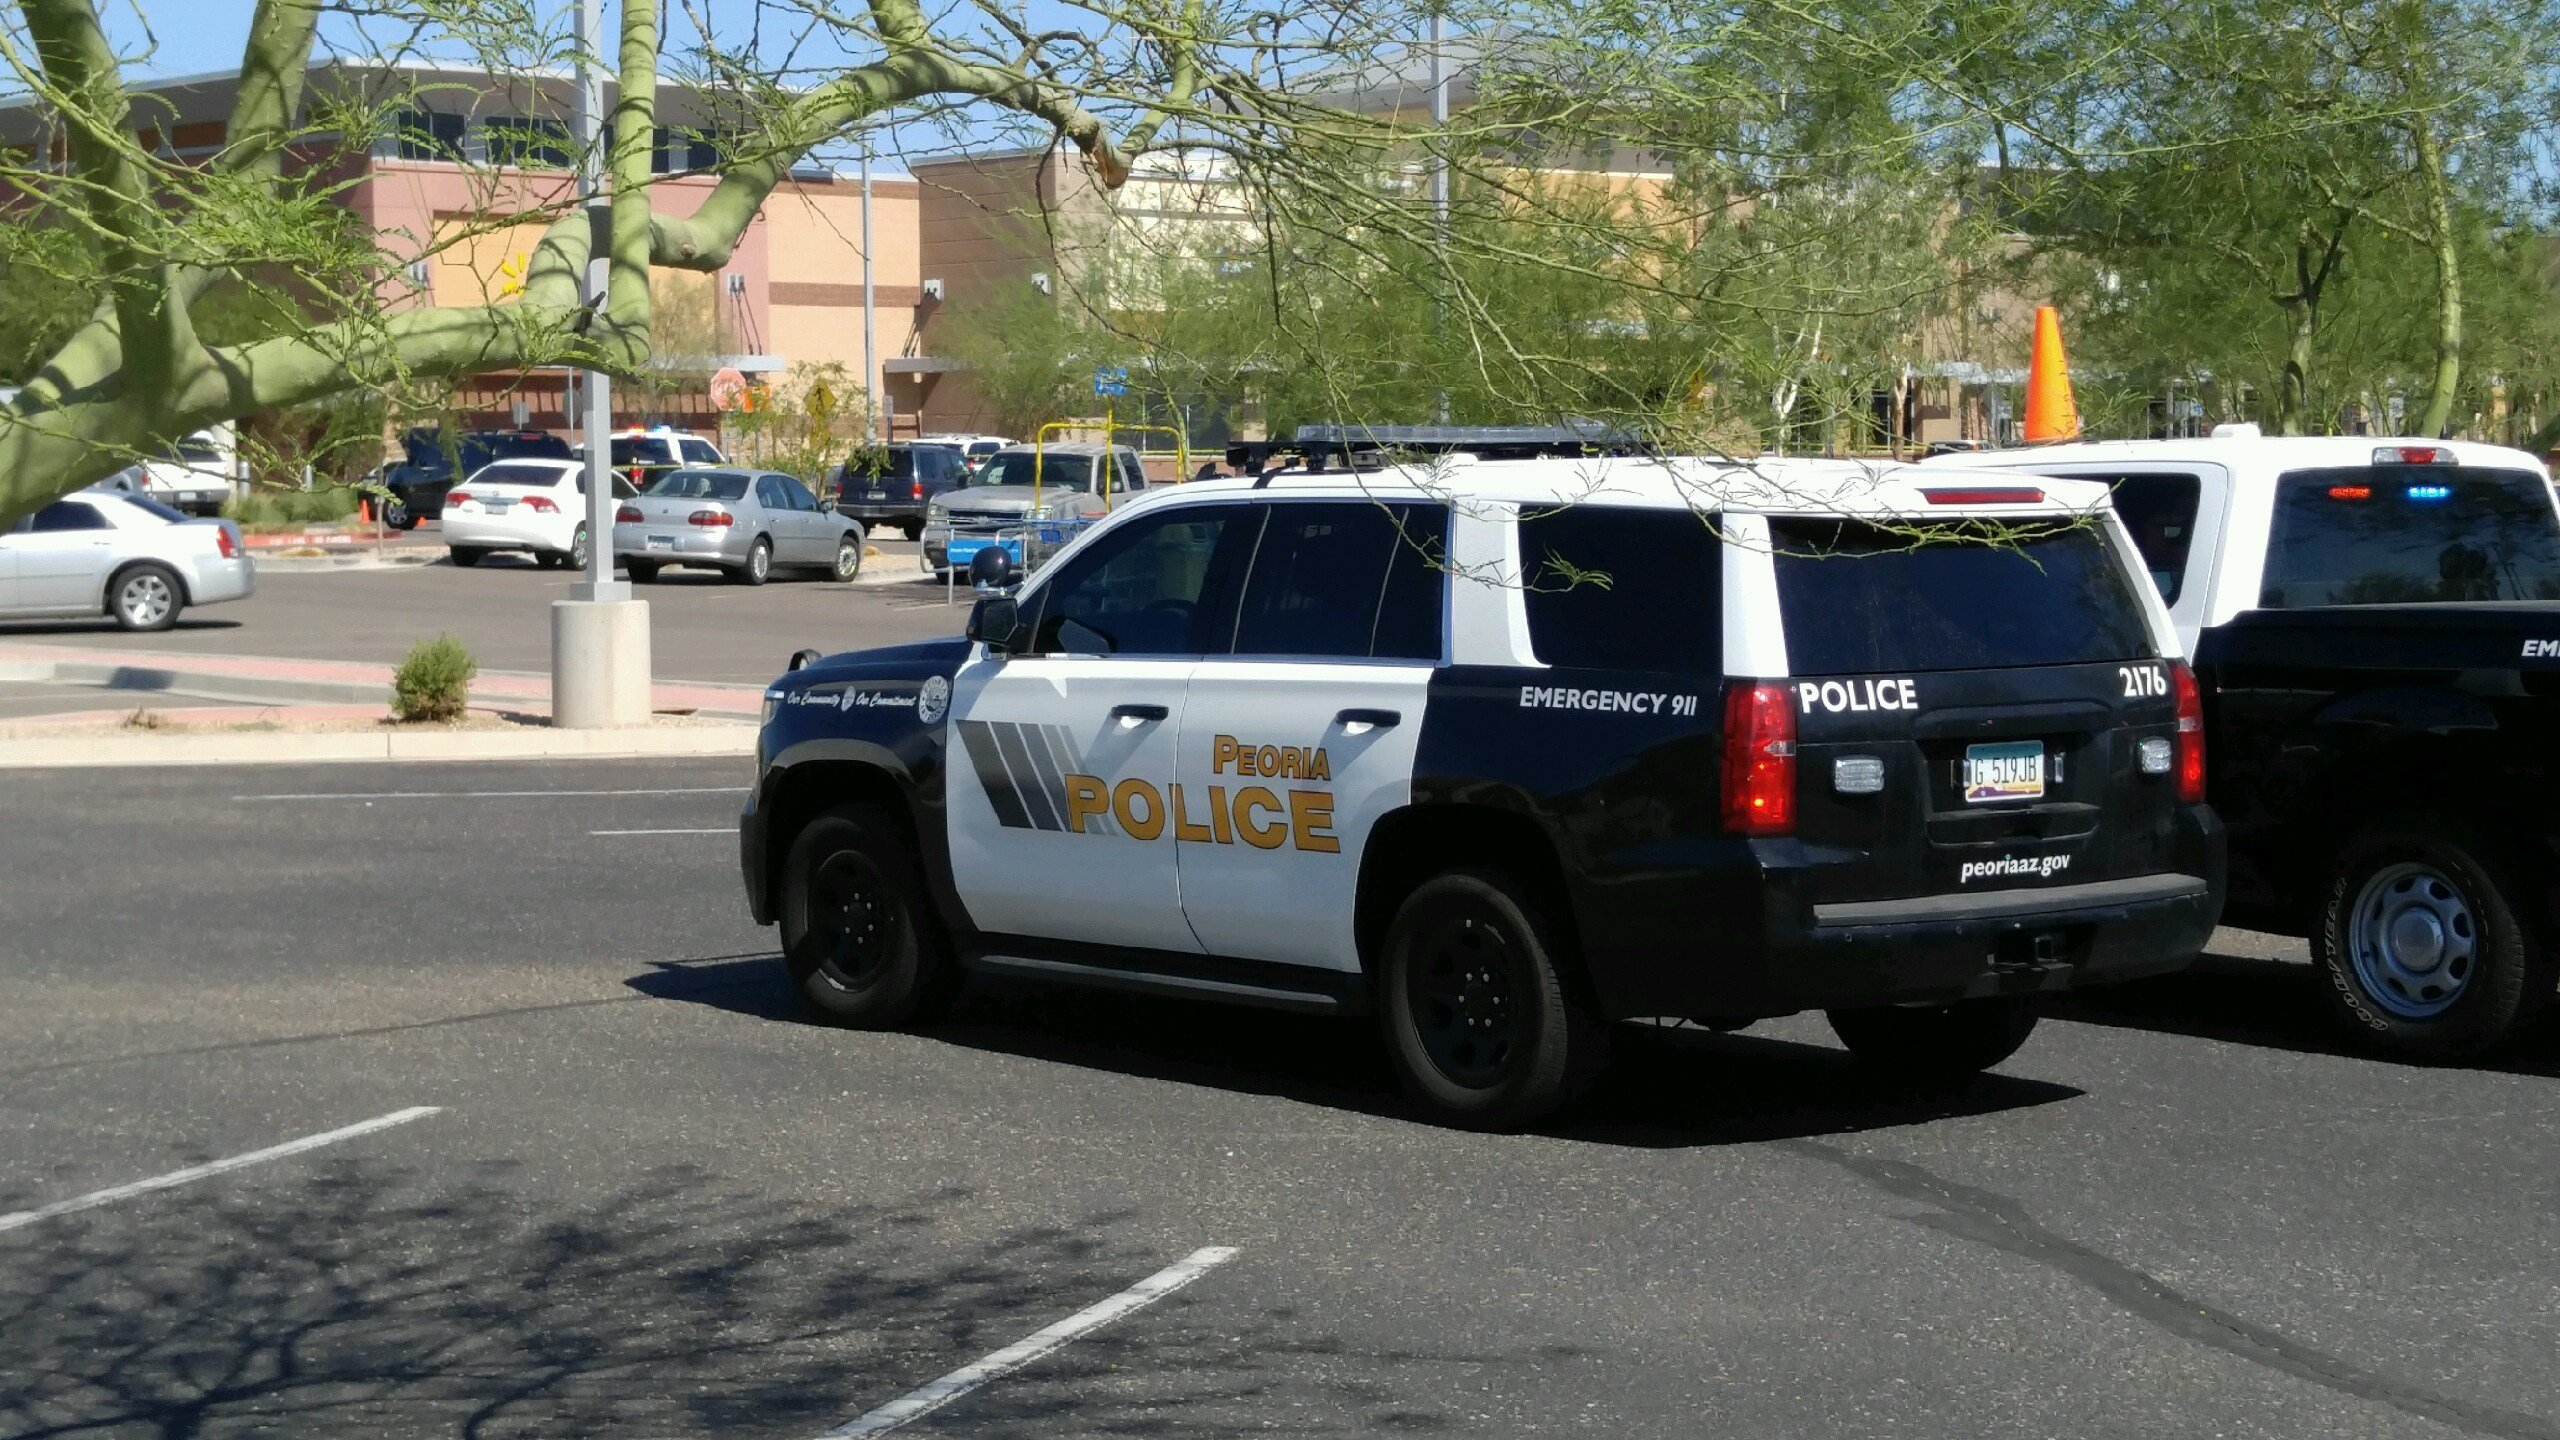 Police evacuated a Walmart on Sunday in Peoria. (Source: 3TV/CBS 5)